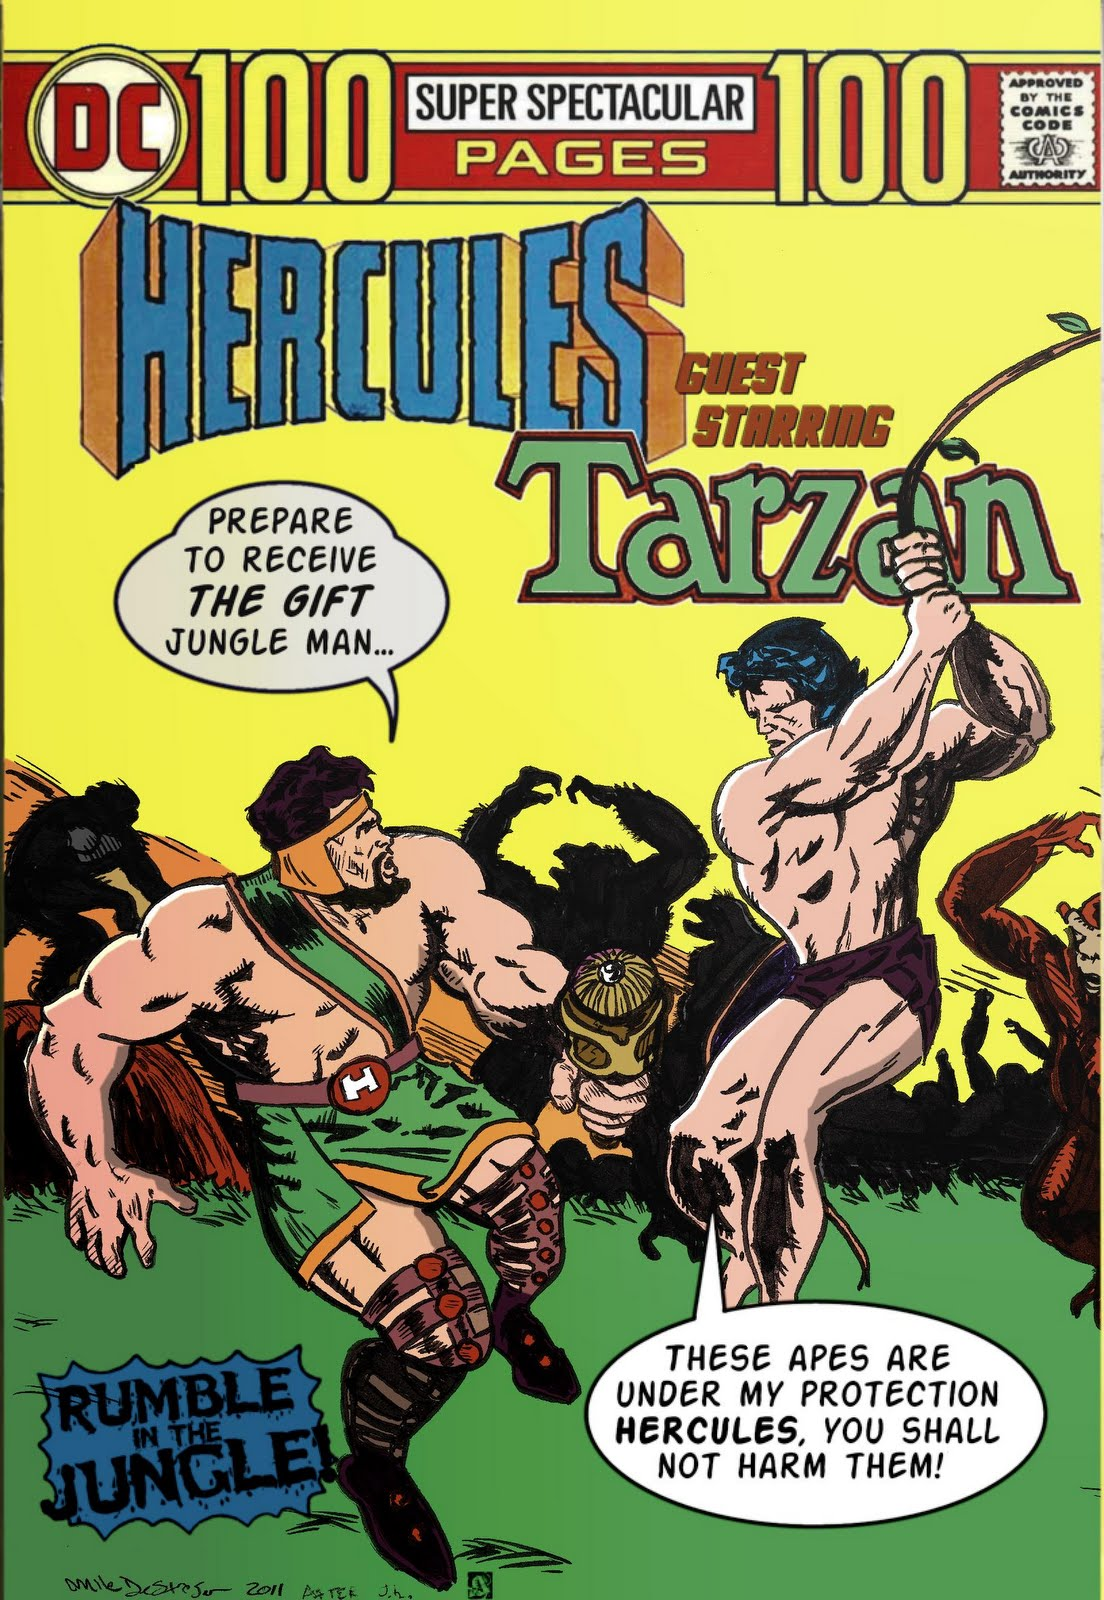 The Mighty Blog of HERCULES: HERCULES vs TARZAN